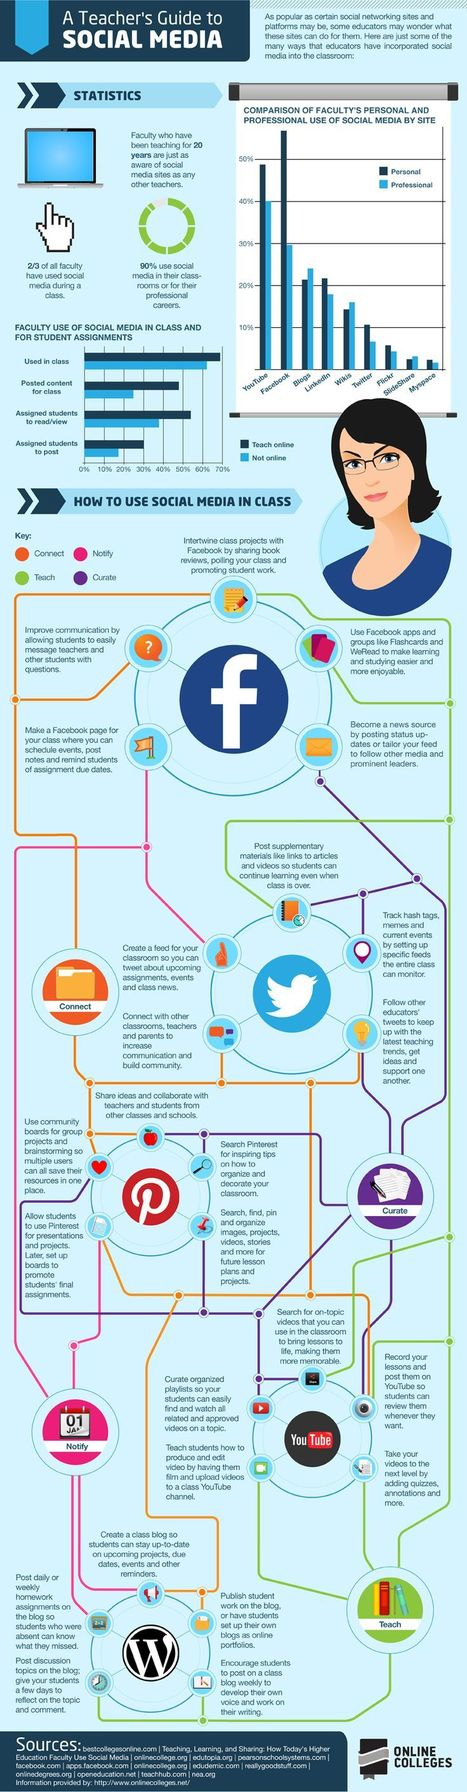 The essential teacher's guide to social media - Daily Genius | Open learning news | Scoop.it